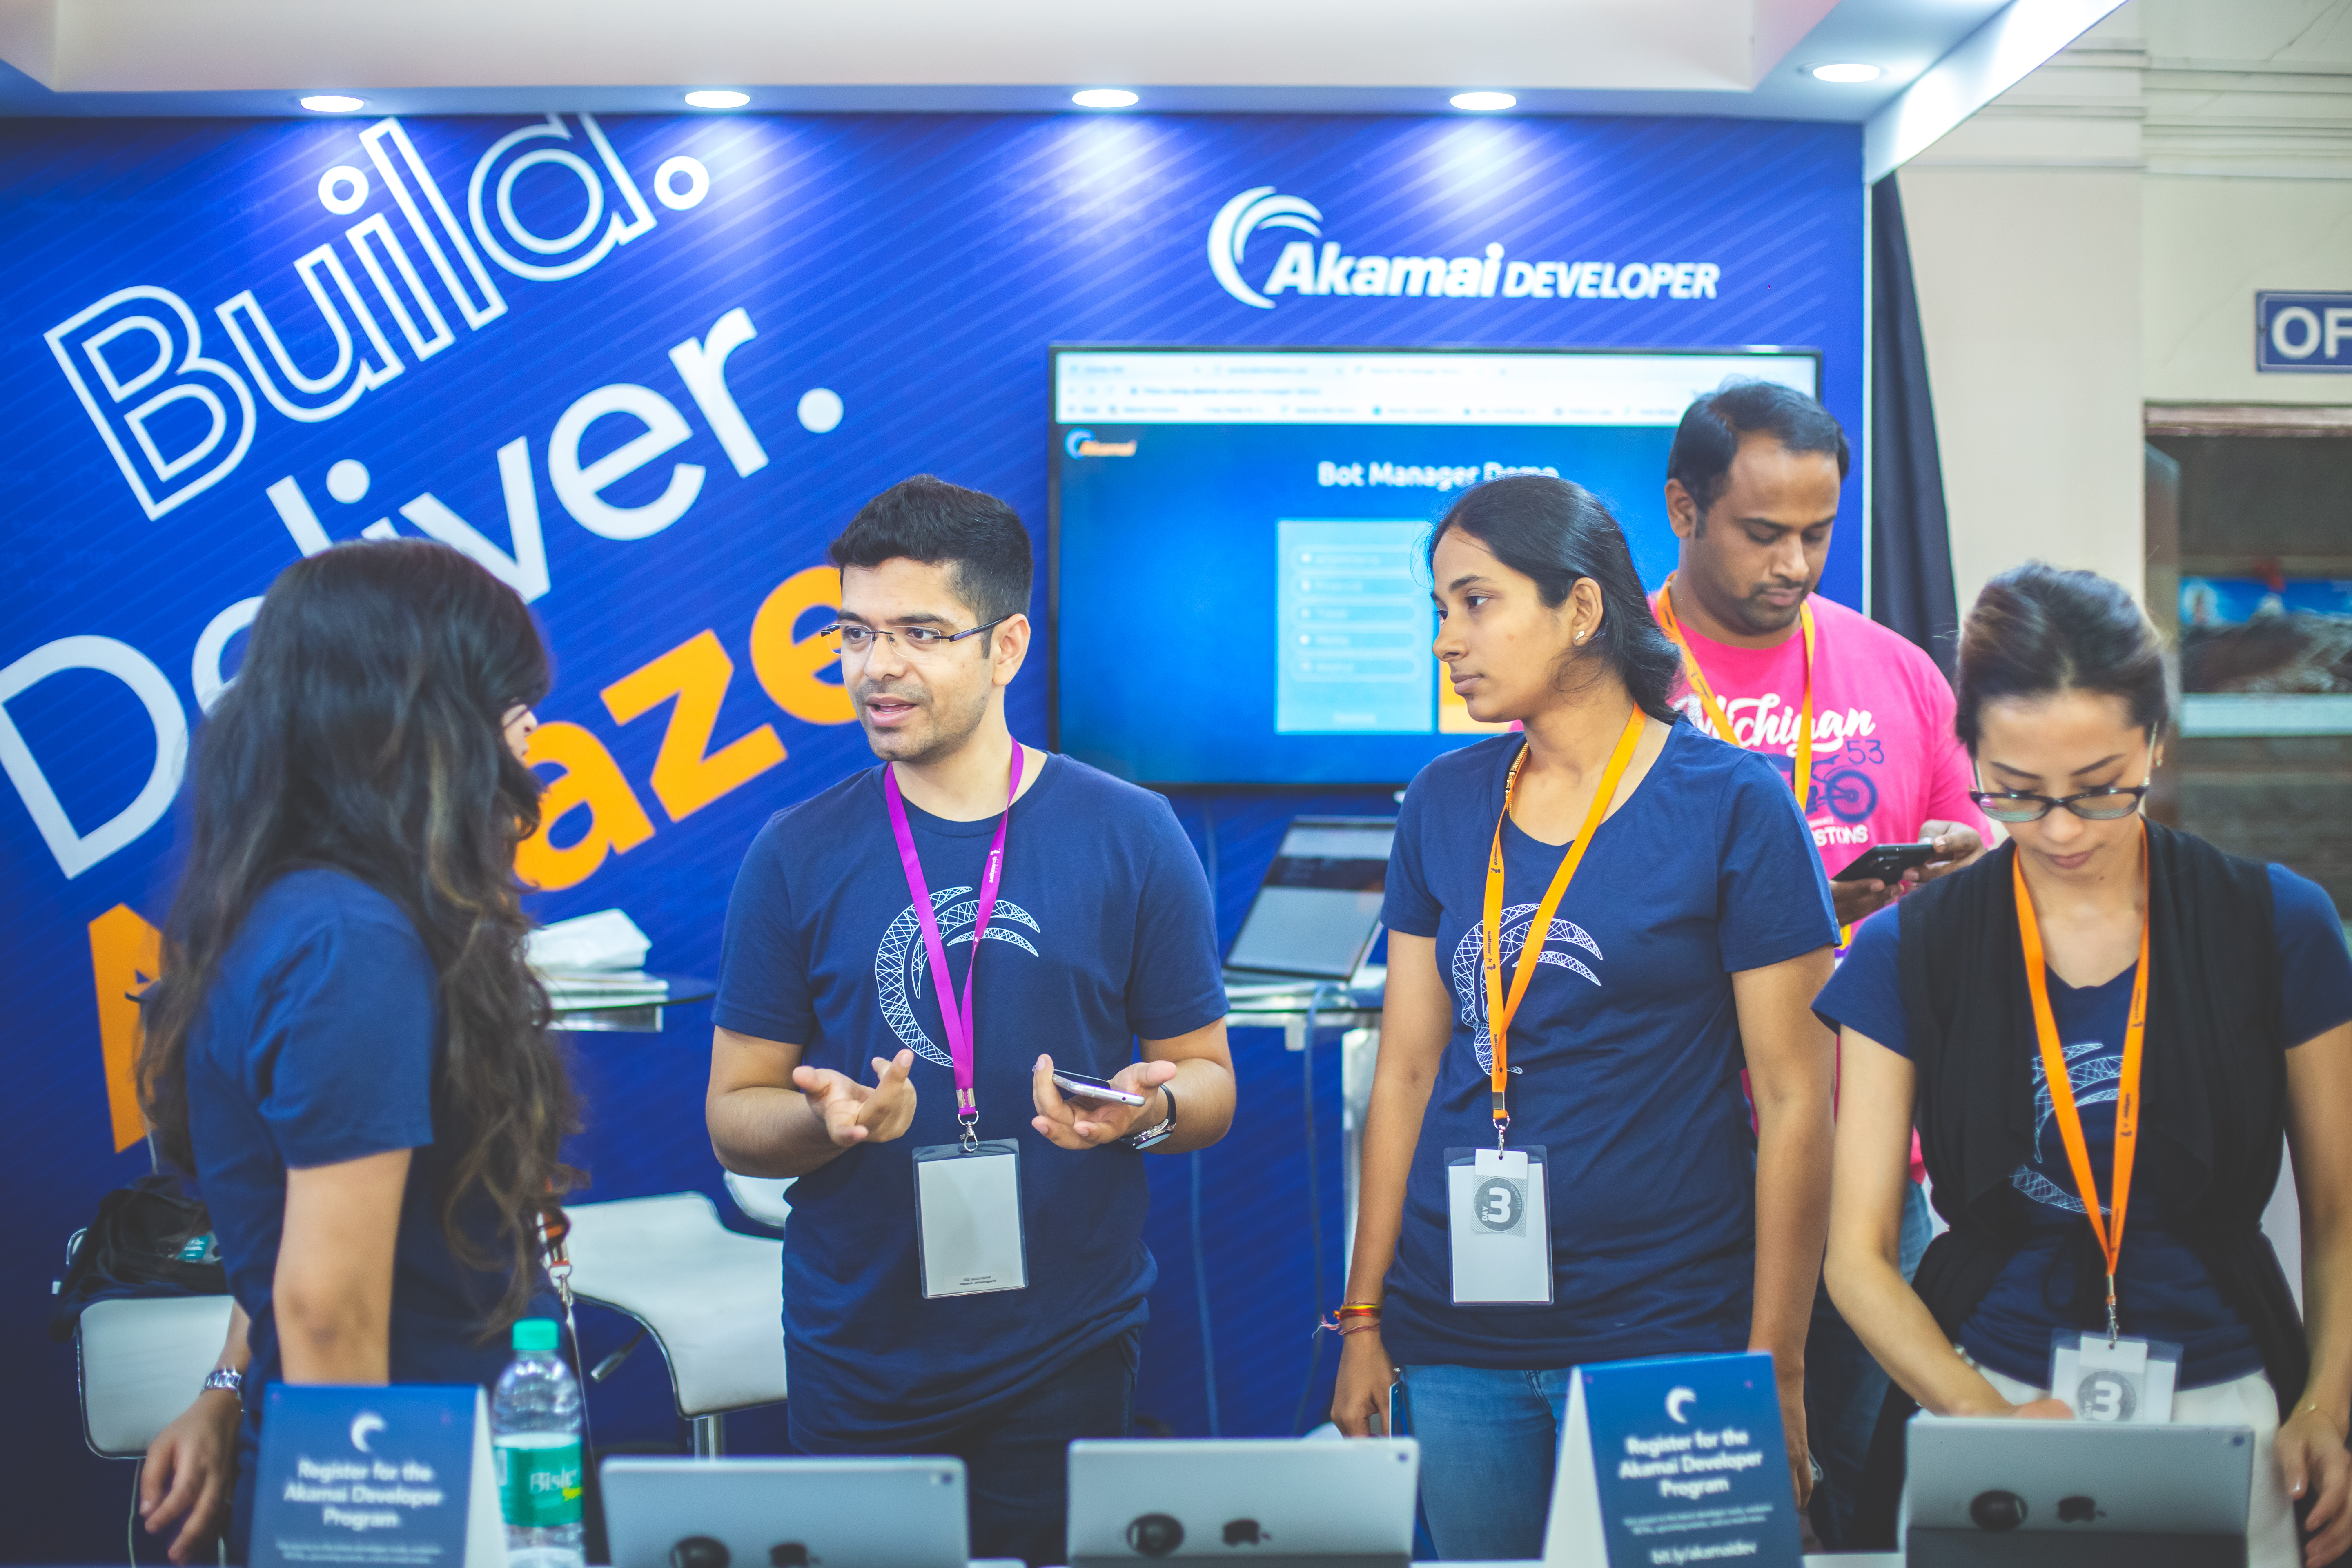 Great International Developer Summit 2019 in India (credits: Saltmarch Media / Flickr Creative Commons Attribution-NonCommercial-NoDerivs 2.0 Generic (CC BY-NC-ND 2.0))